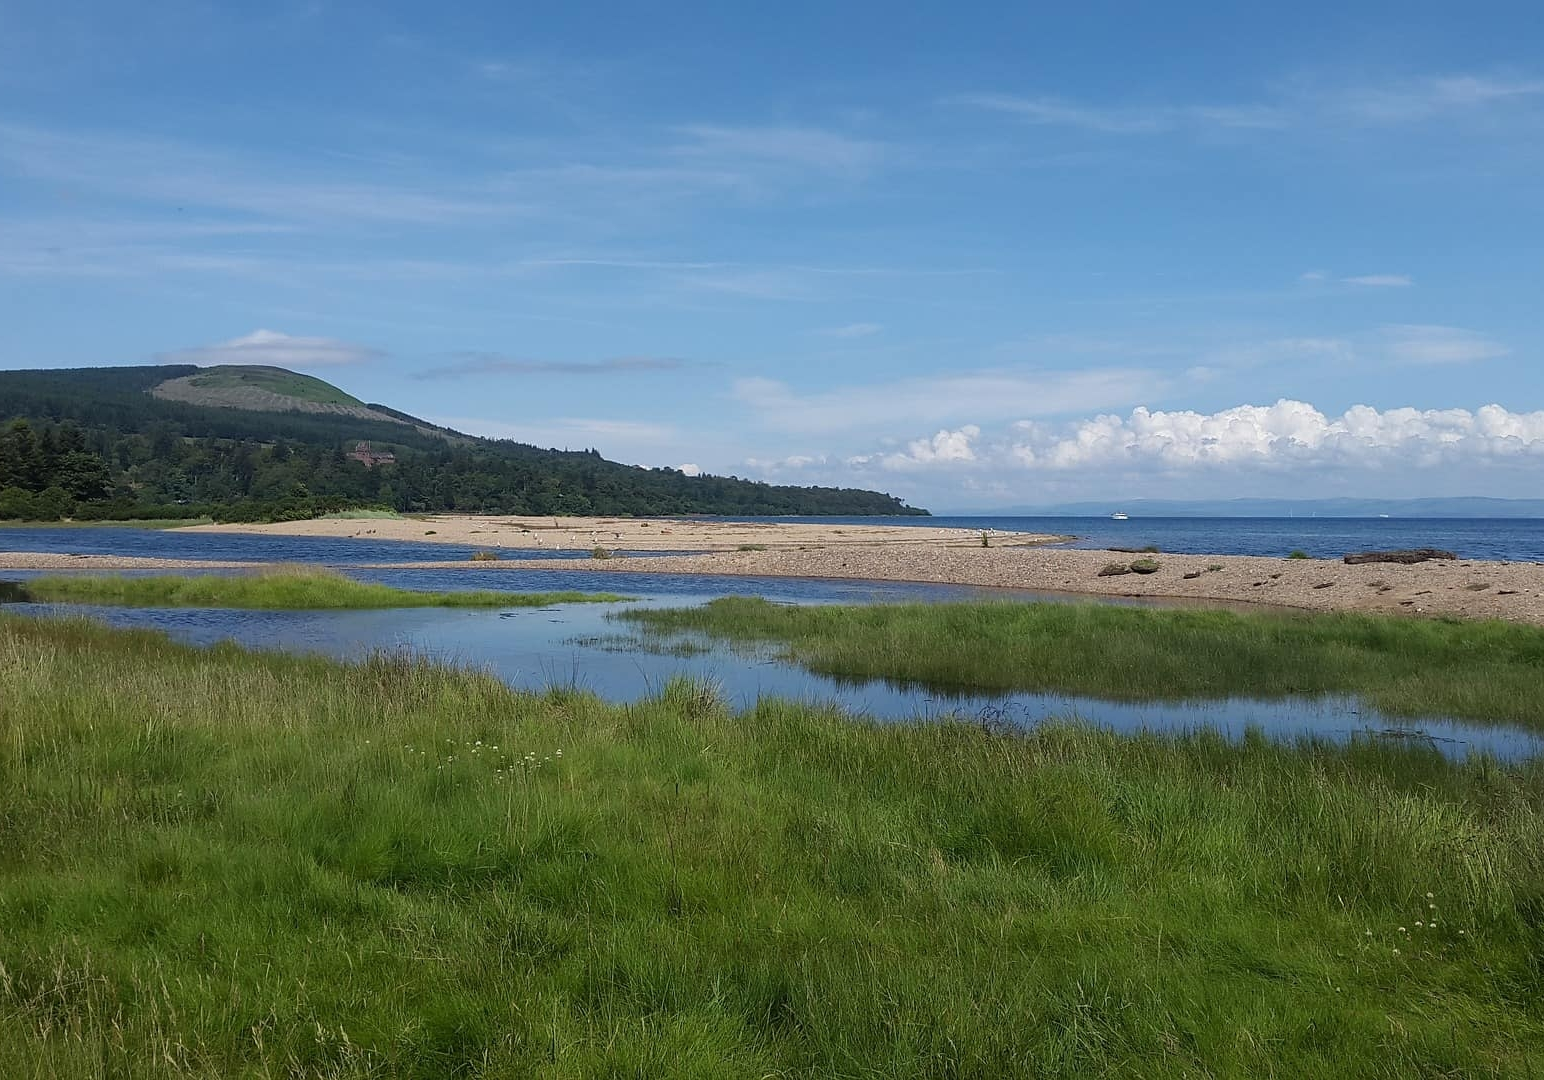 Take a day trip to the Isle of Arran with a ferry trip and coastal walks